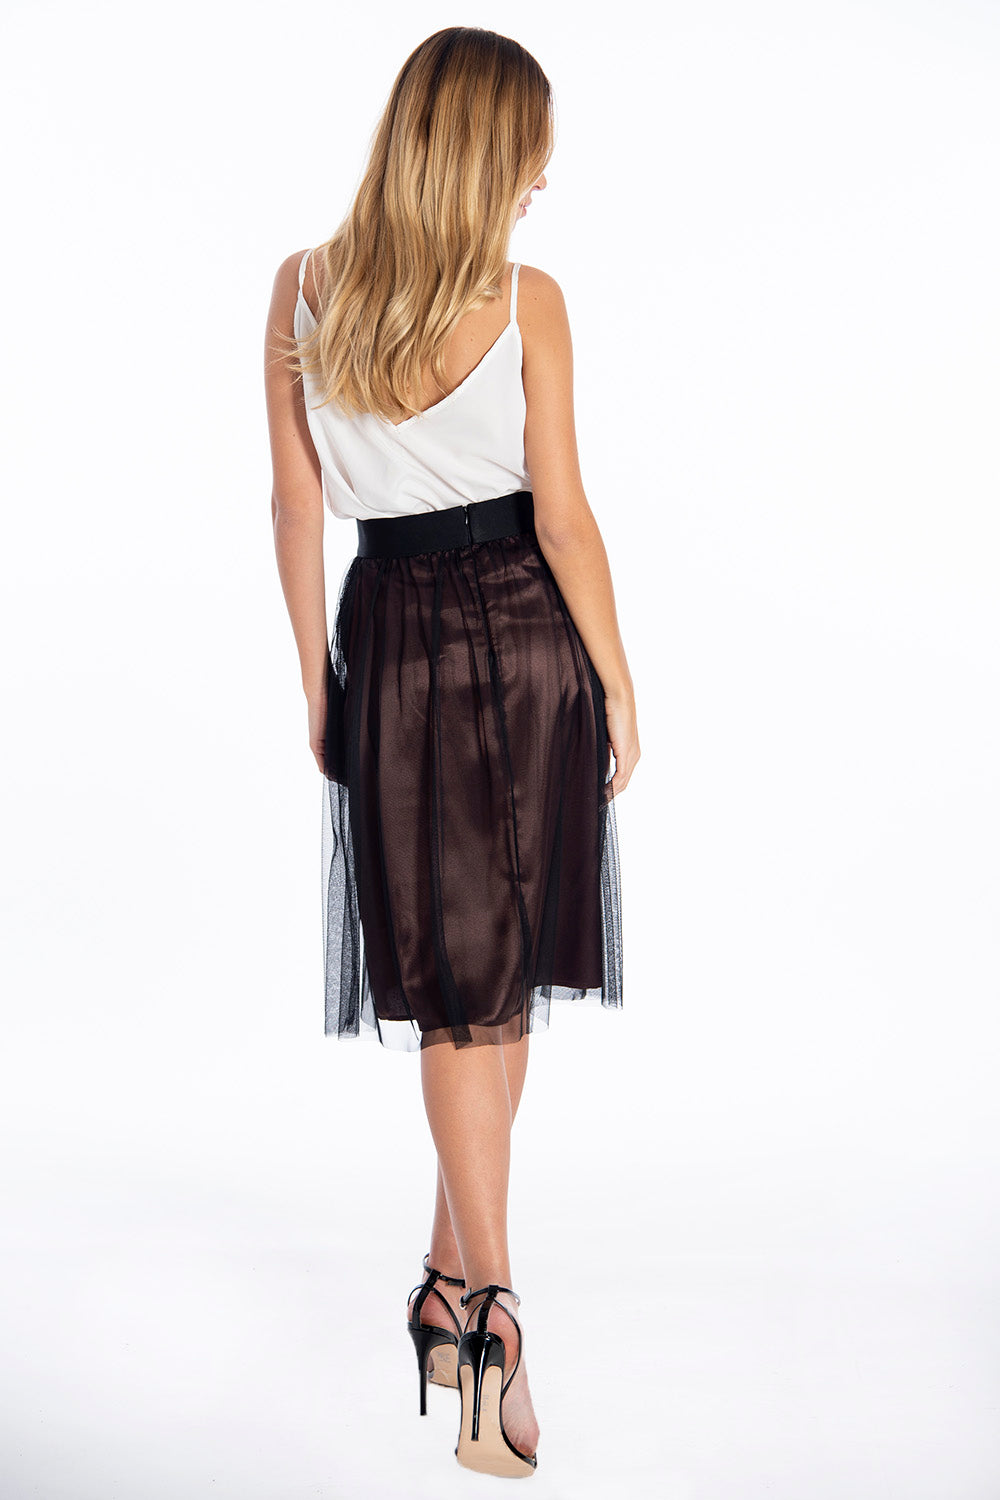 Féria tulle skirt with brown silky inner lining